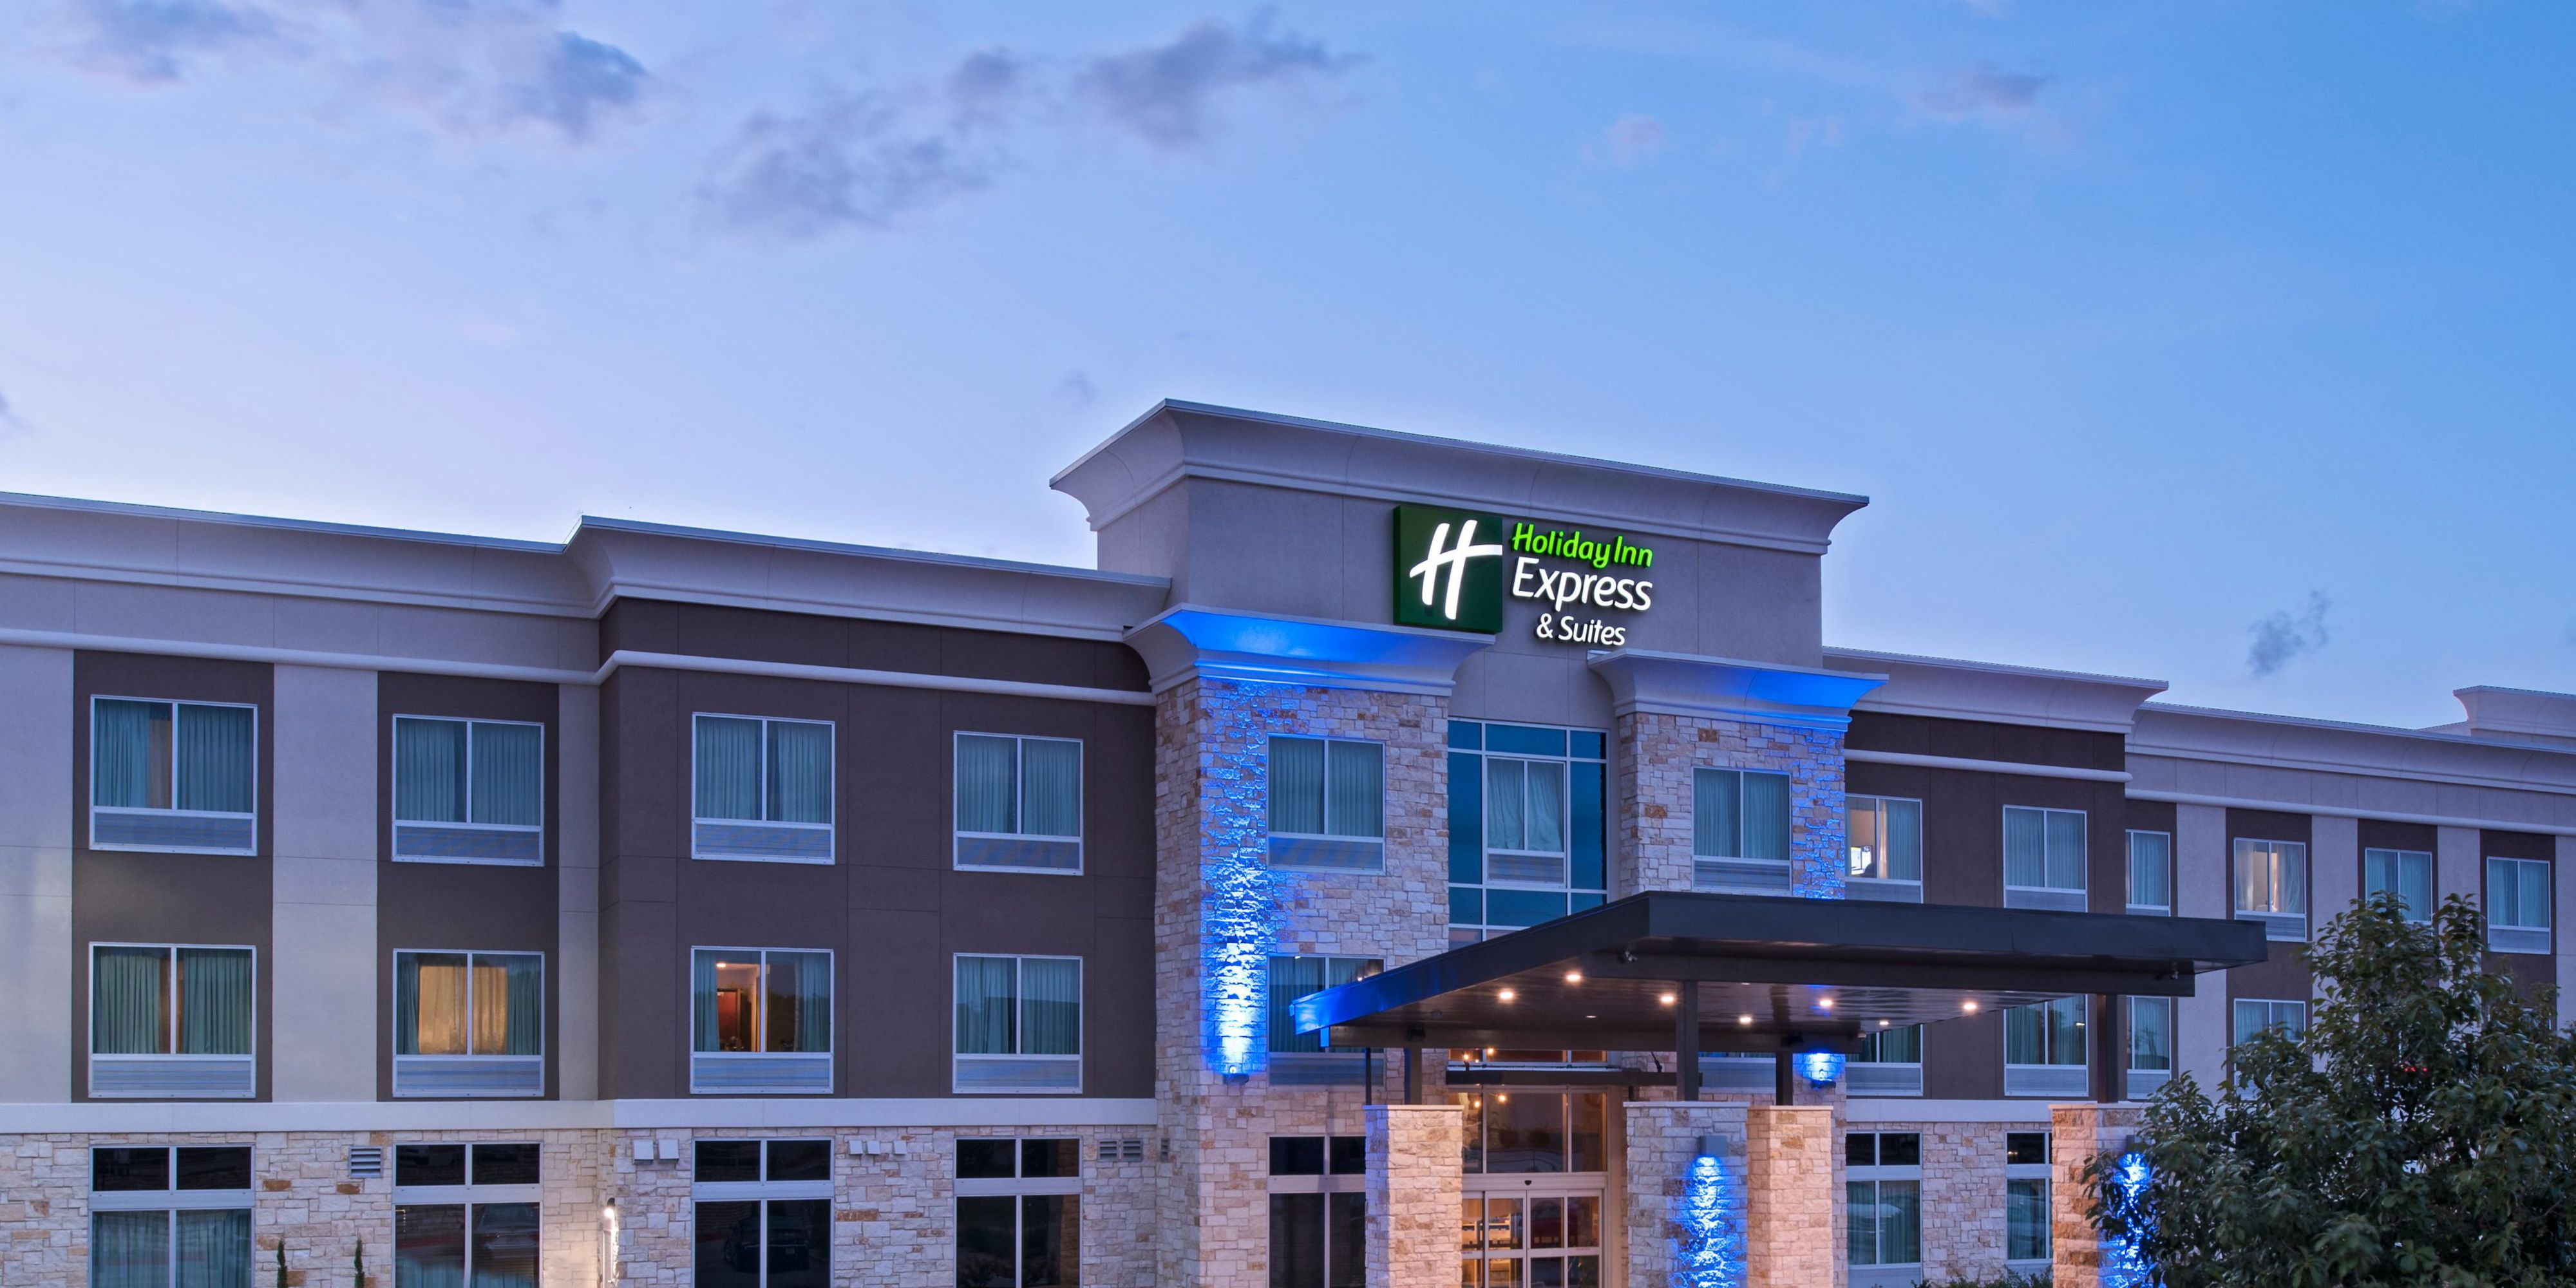 Cost to build a new house in austin - Holiday Inn Express And Suites Austin 4786433439 2x1